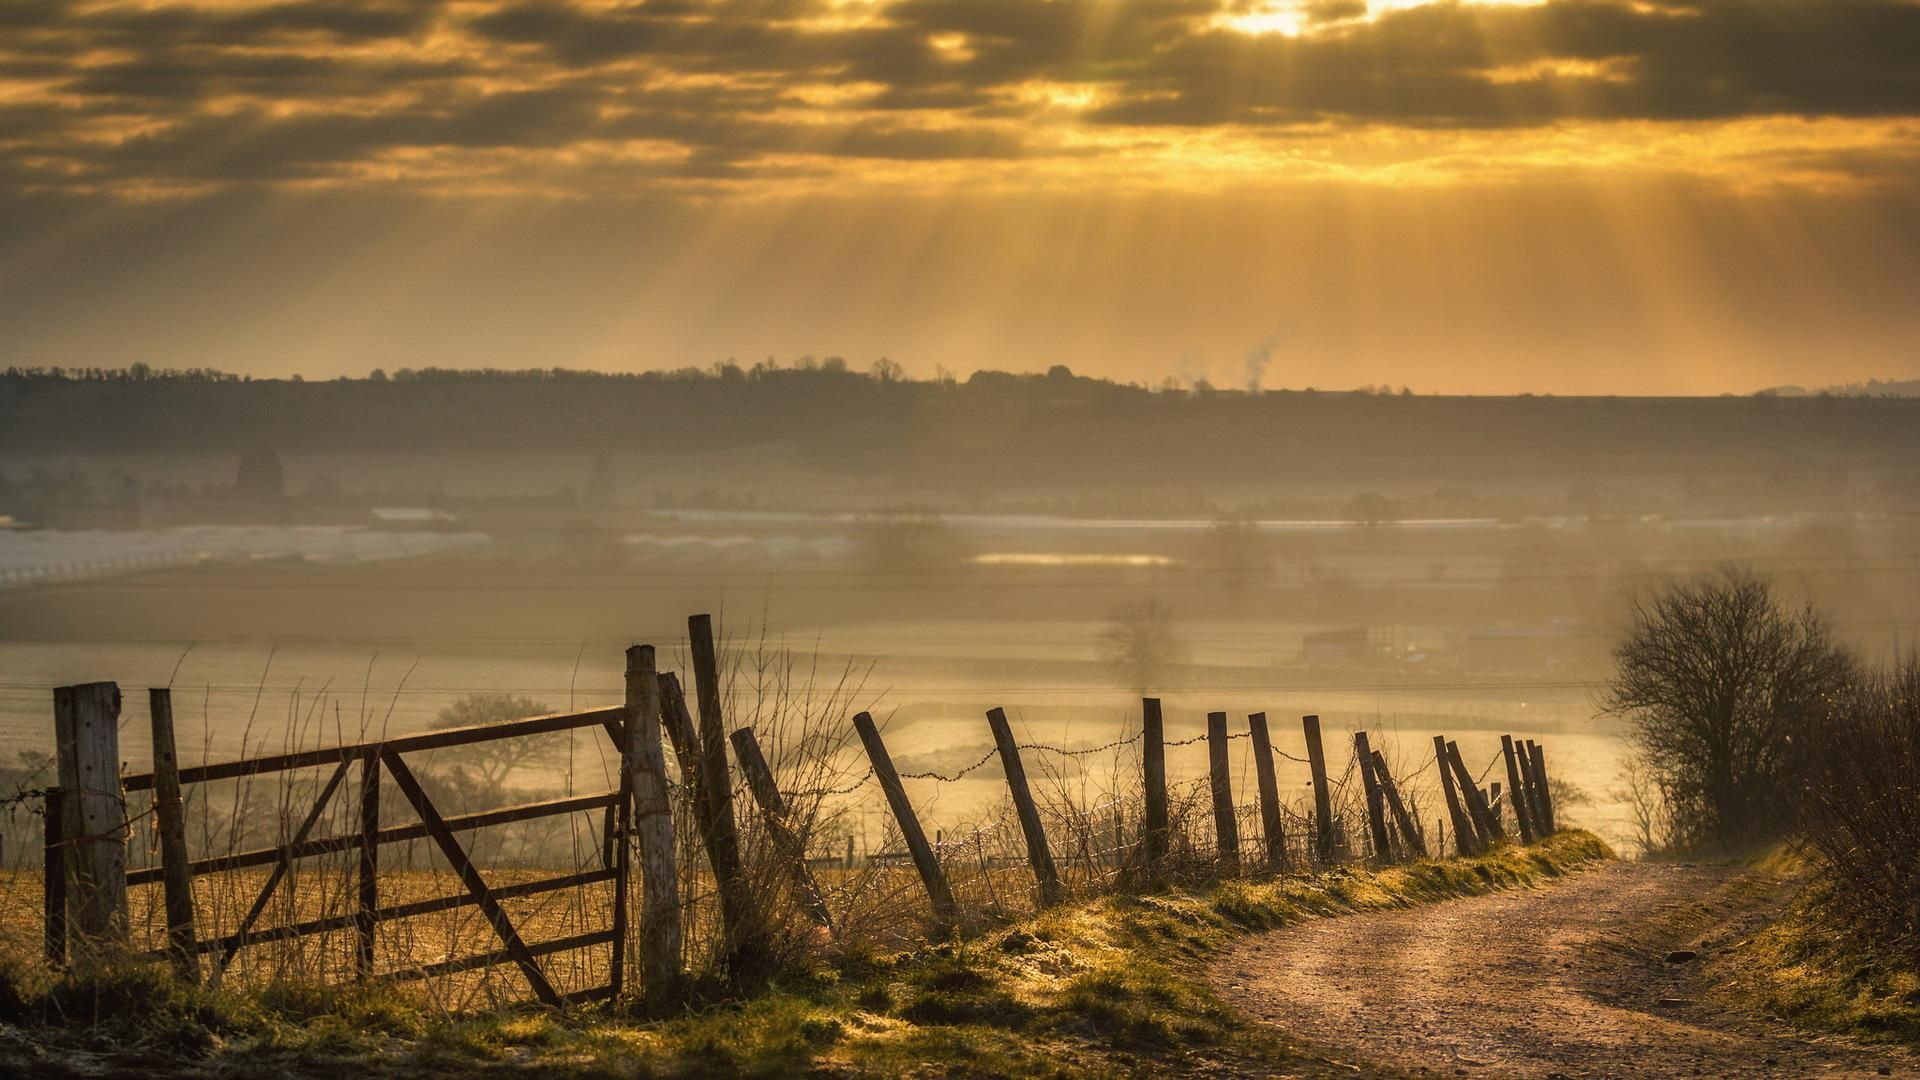 The Misty Country Side Scenery Wallpaper Country Backgrounds Country Roads